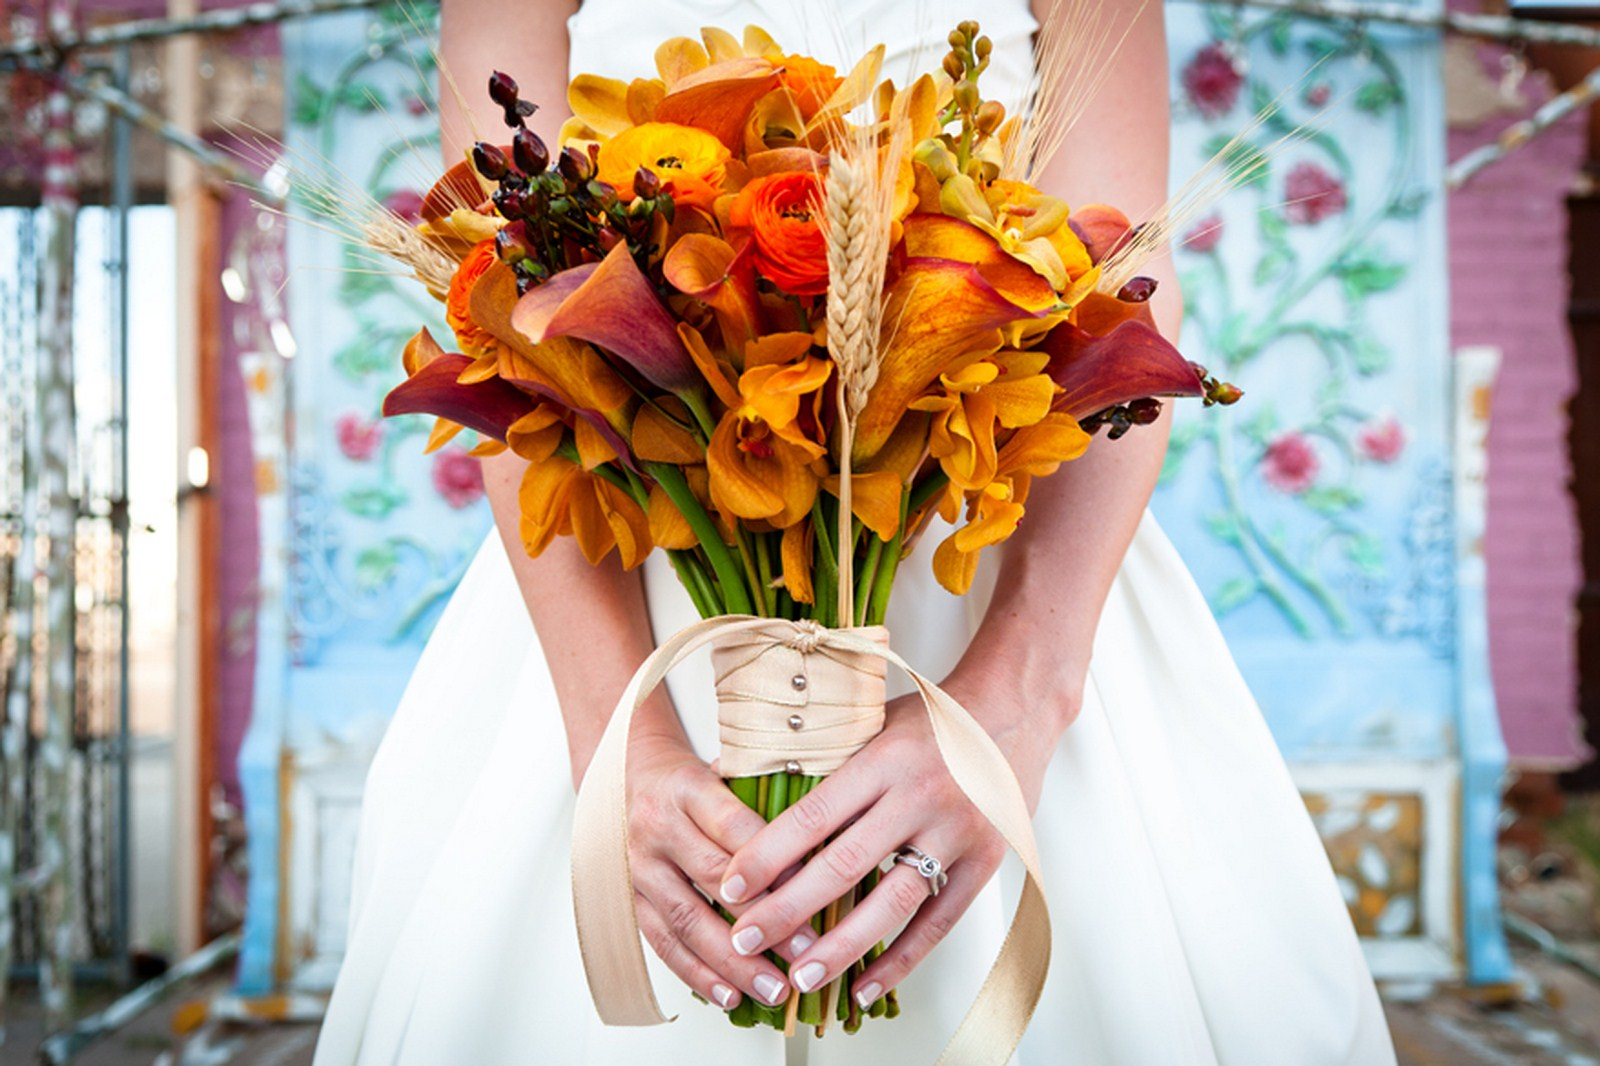 3 fall bridal bouquet orange and red floral bouquet bridal bouquet Kent Drake photography Life Design events.jpg